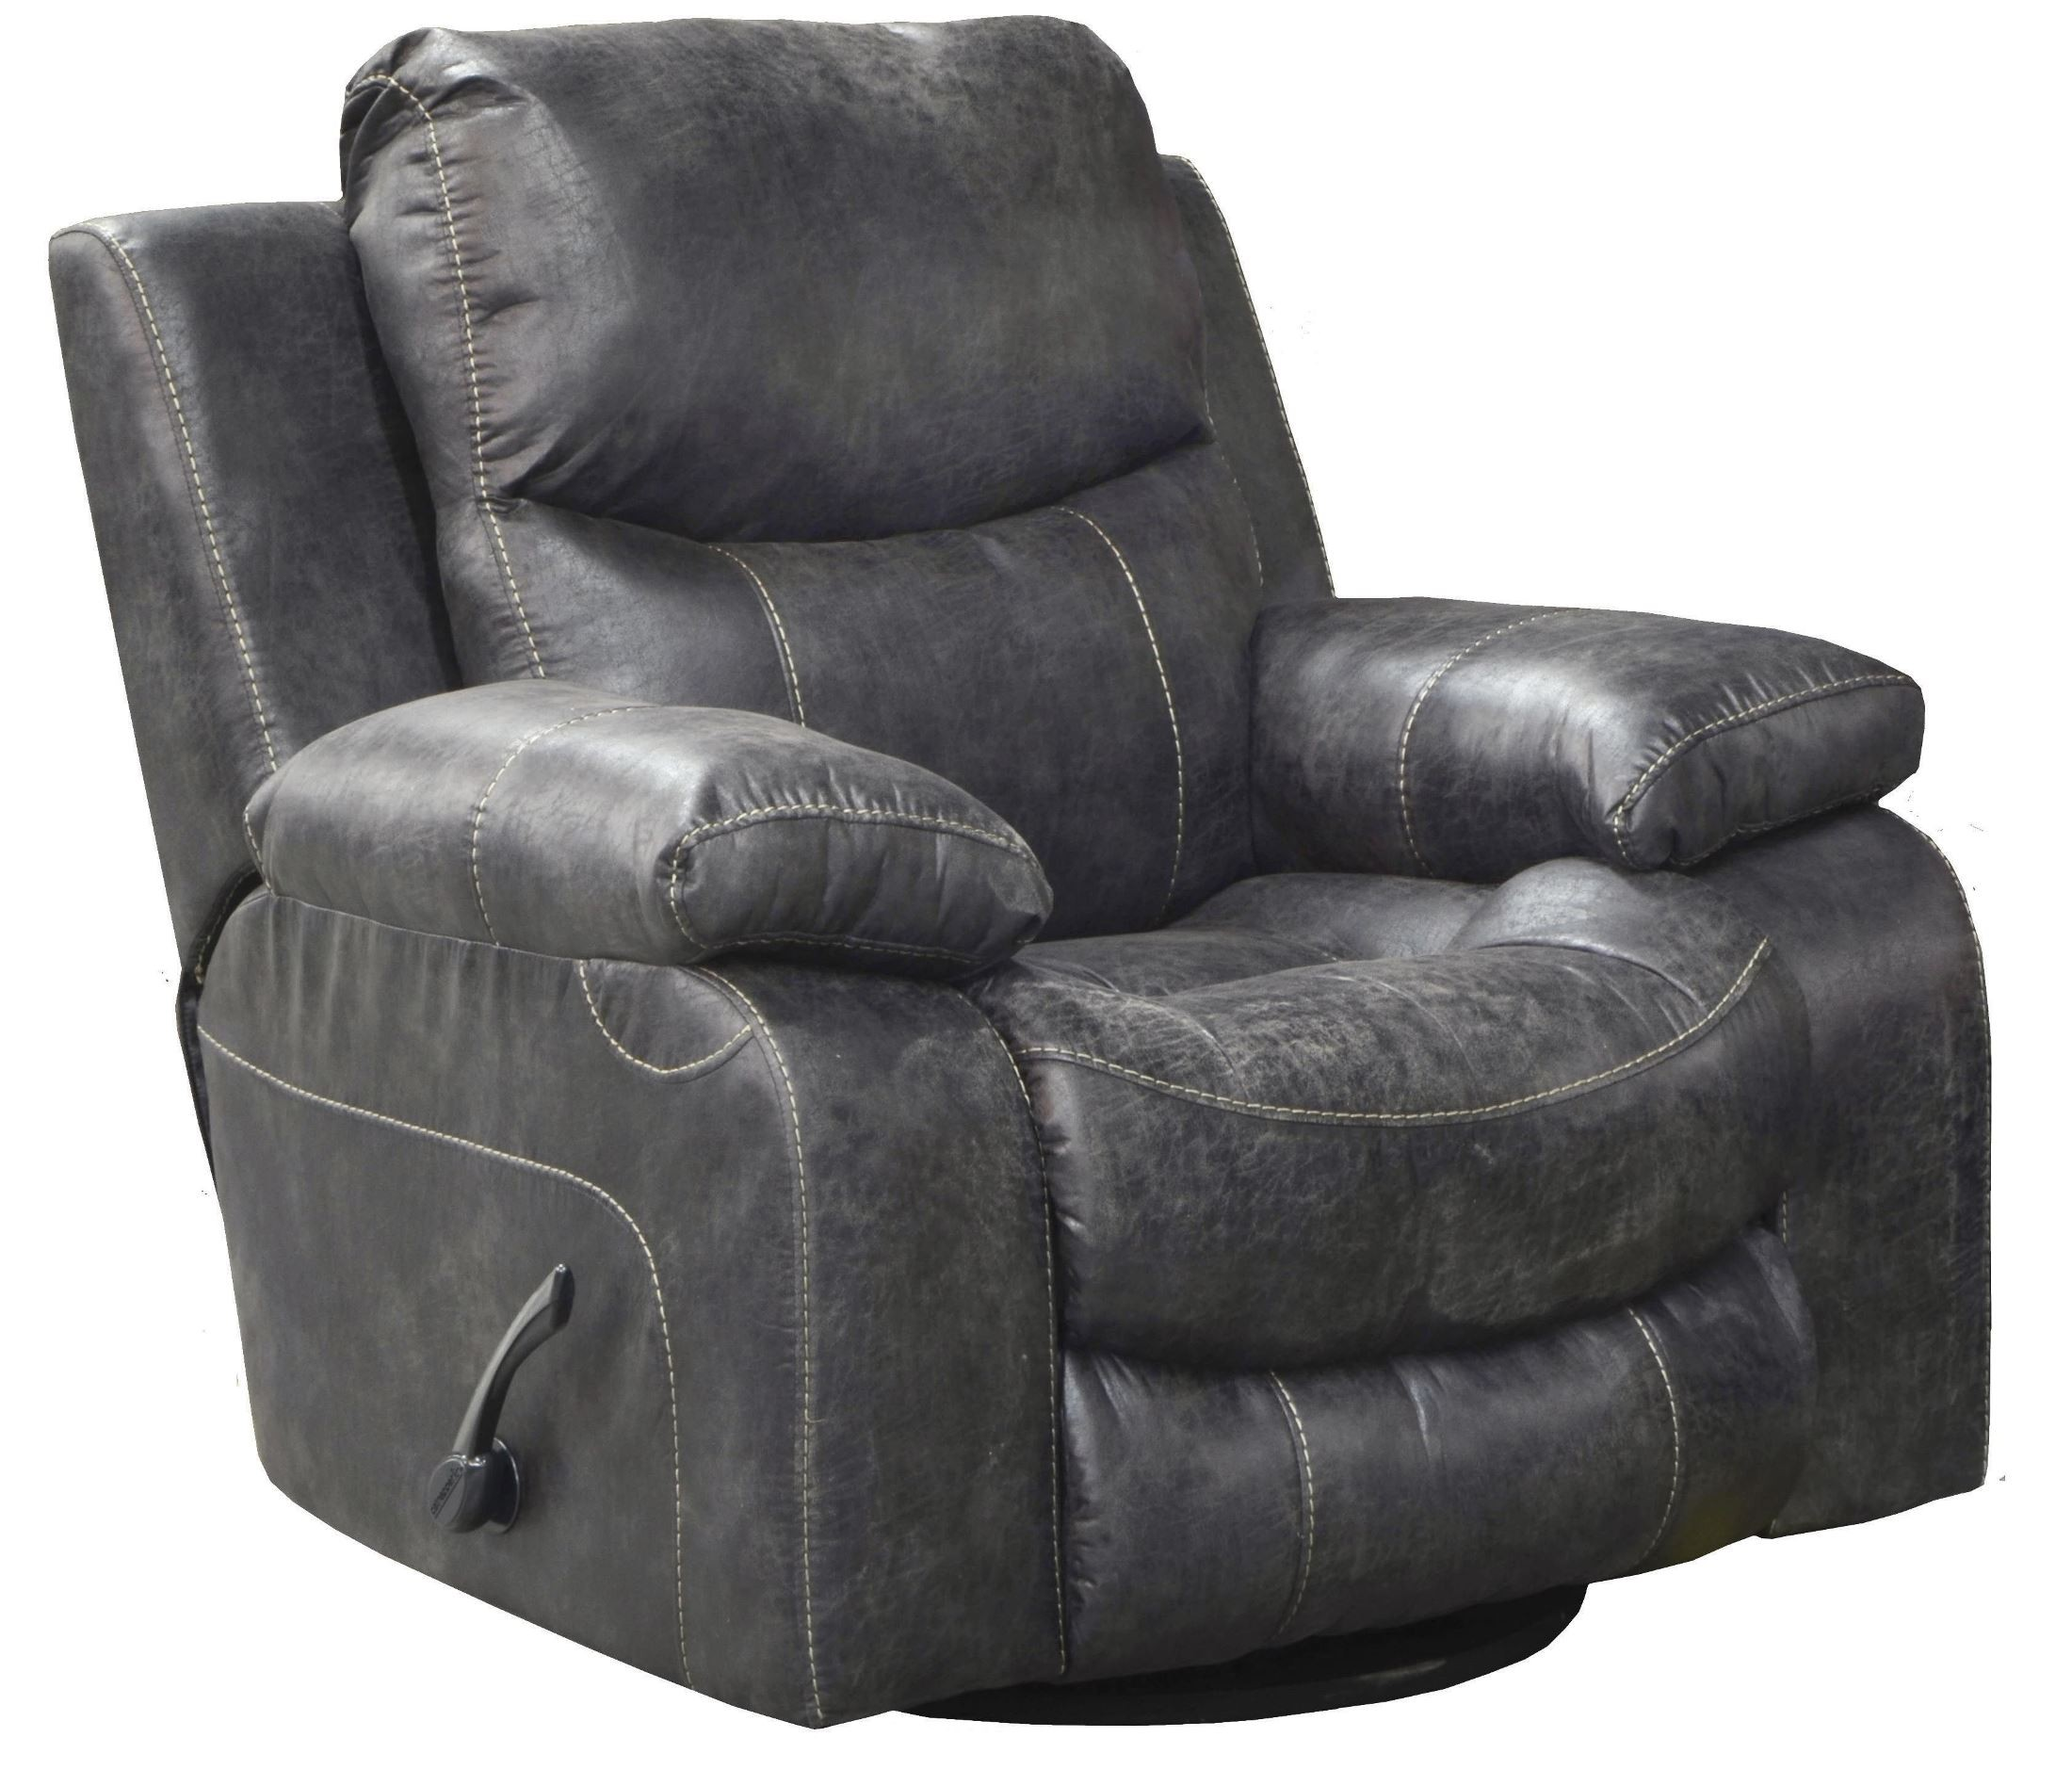 Catalina steel recliner from catnapper 43105100000000000 for Catnapper cloud nine chaise recliner